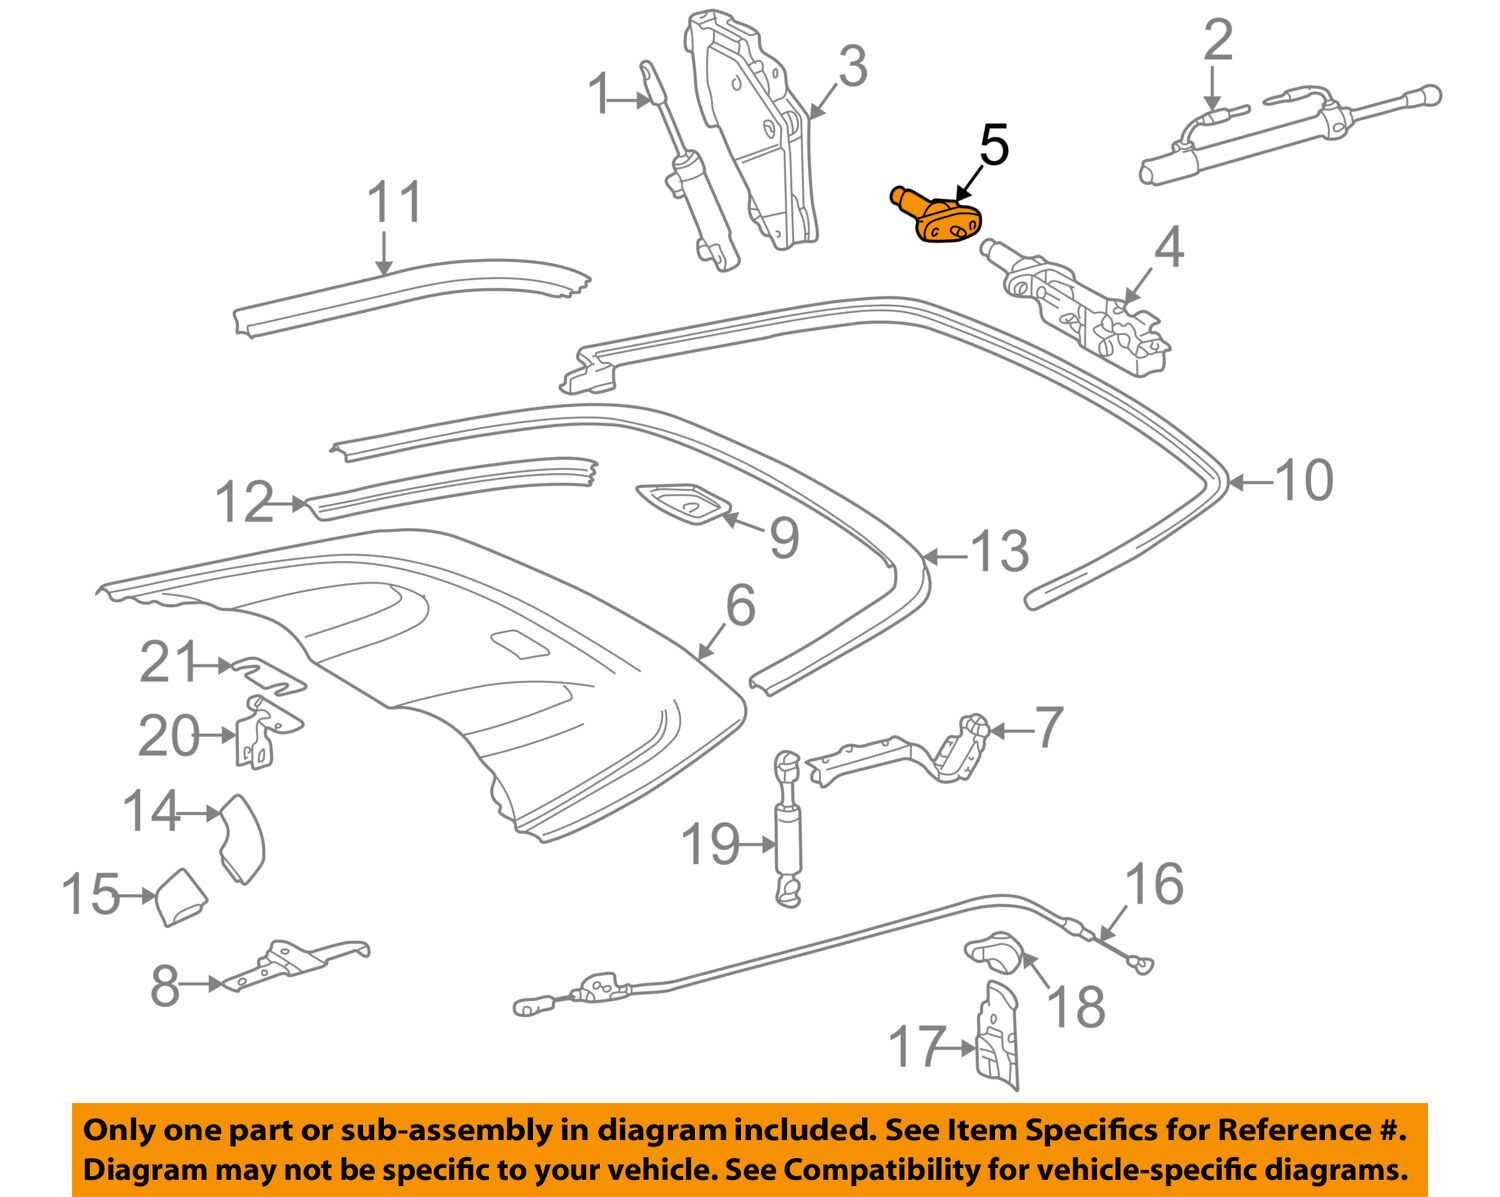 Mercedes Clk 320 Engine Diagram Wiring Library 1 Of 2only 5 Available Oem Clk320